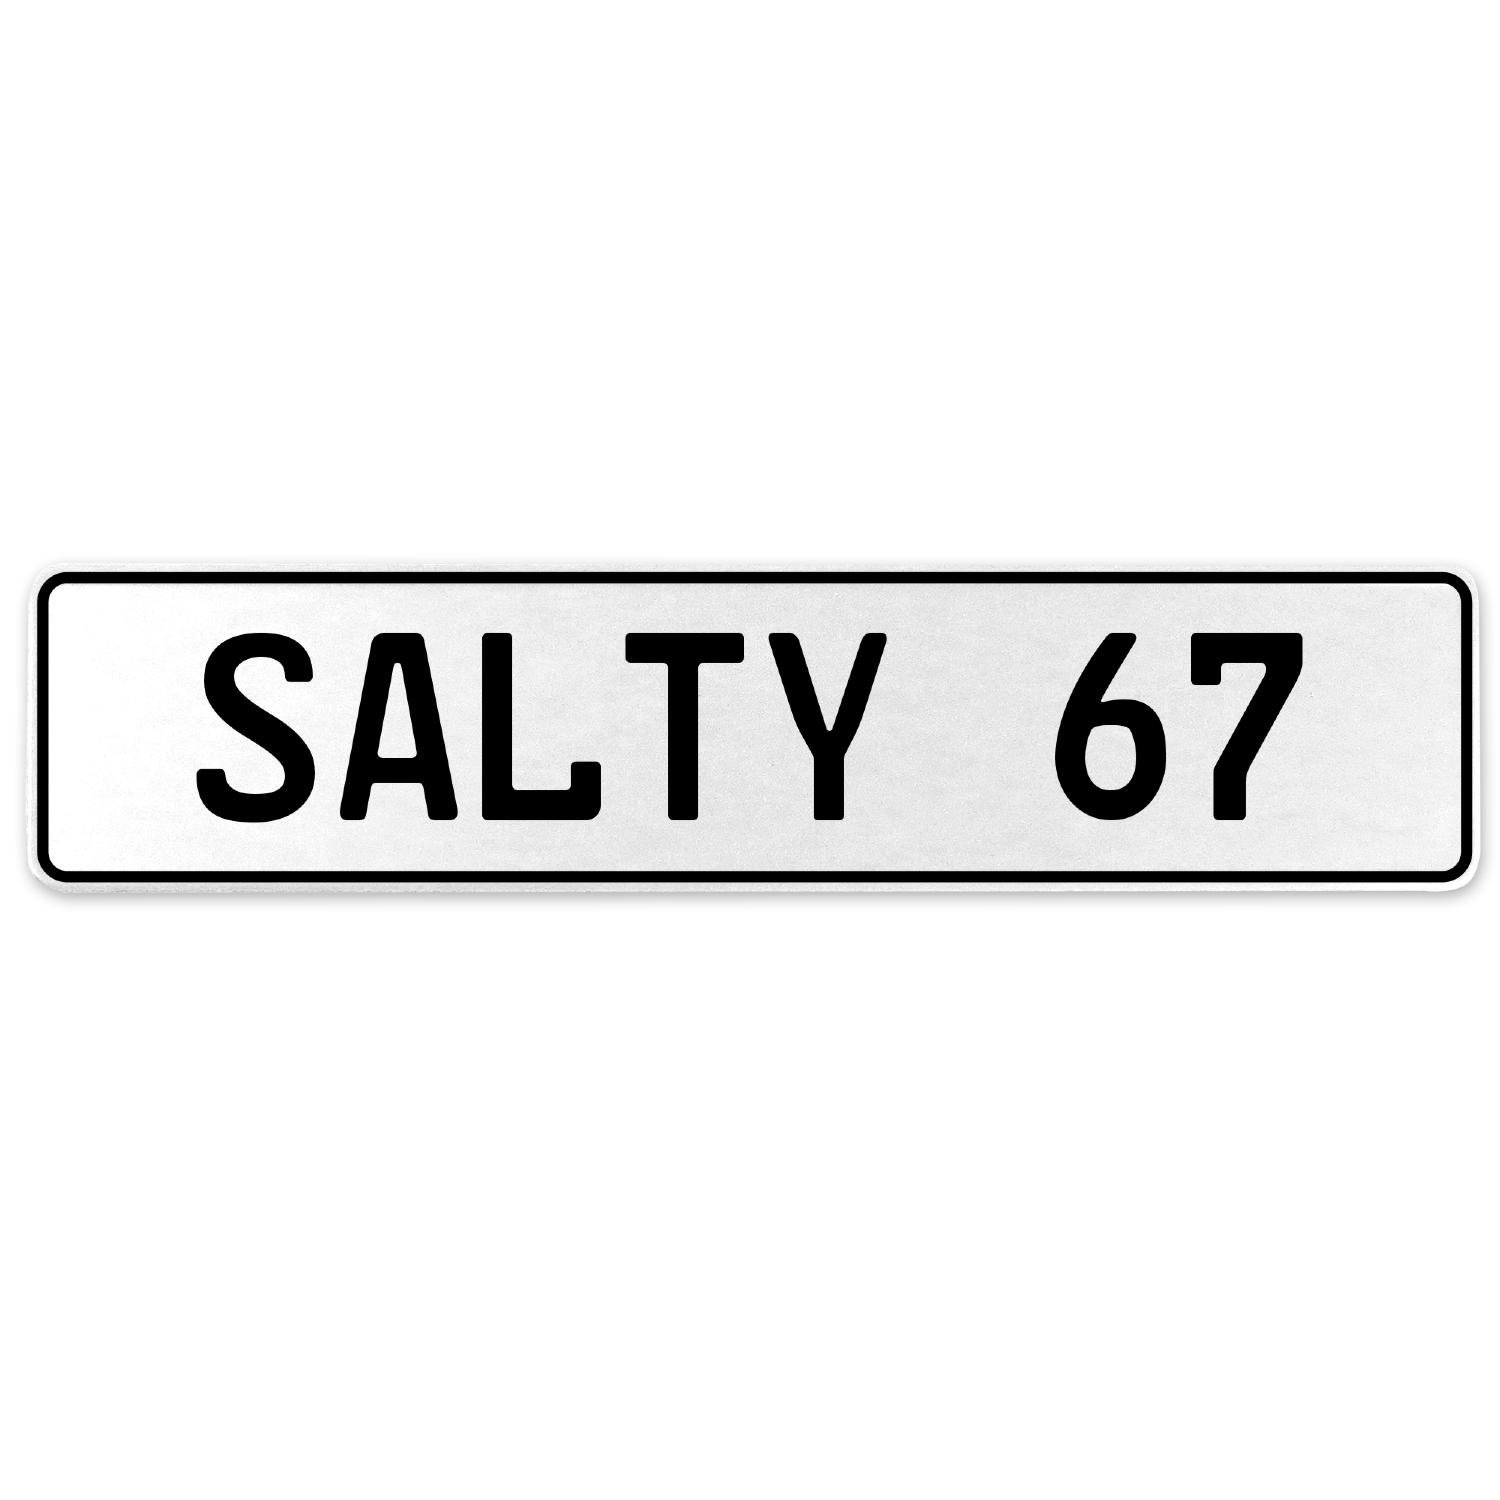 Vintage Parts 556743 Salty 67 White Stamped Aluminum European License Plate